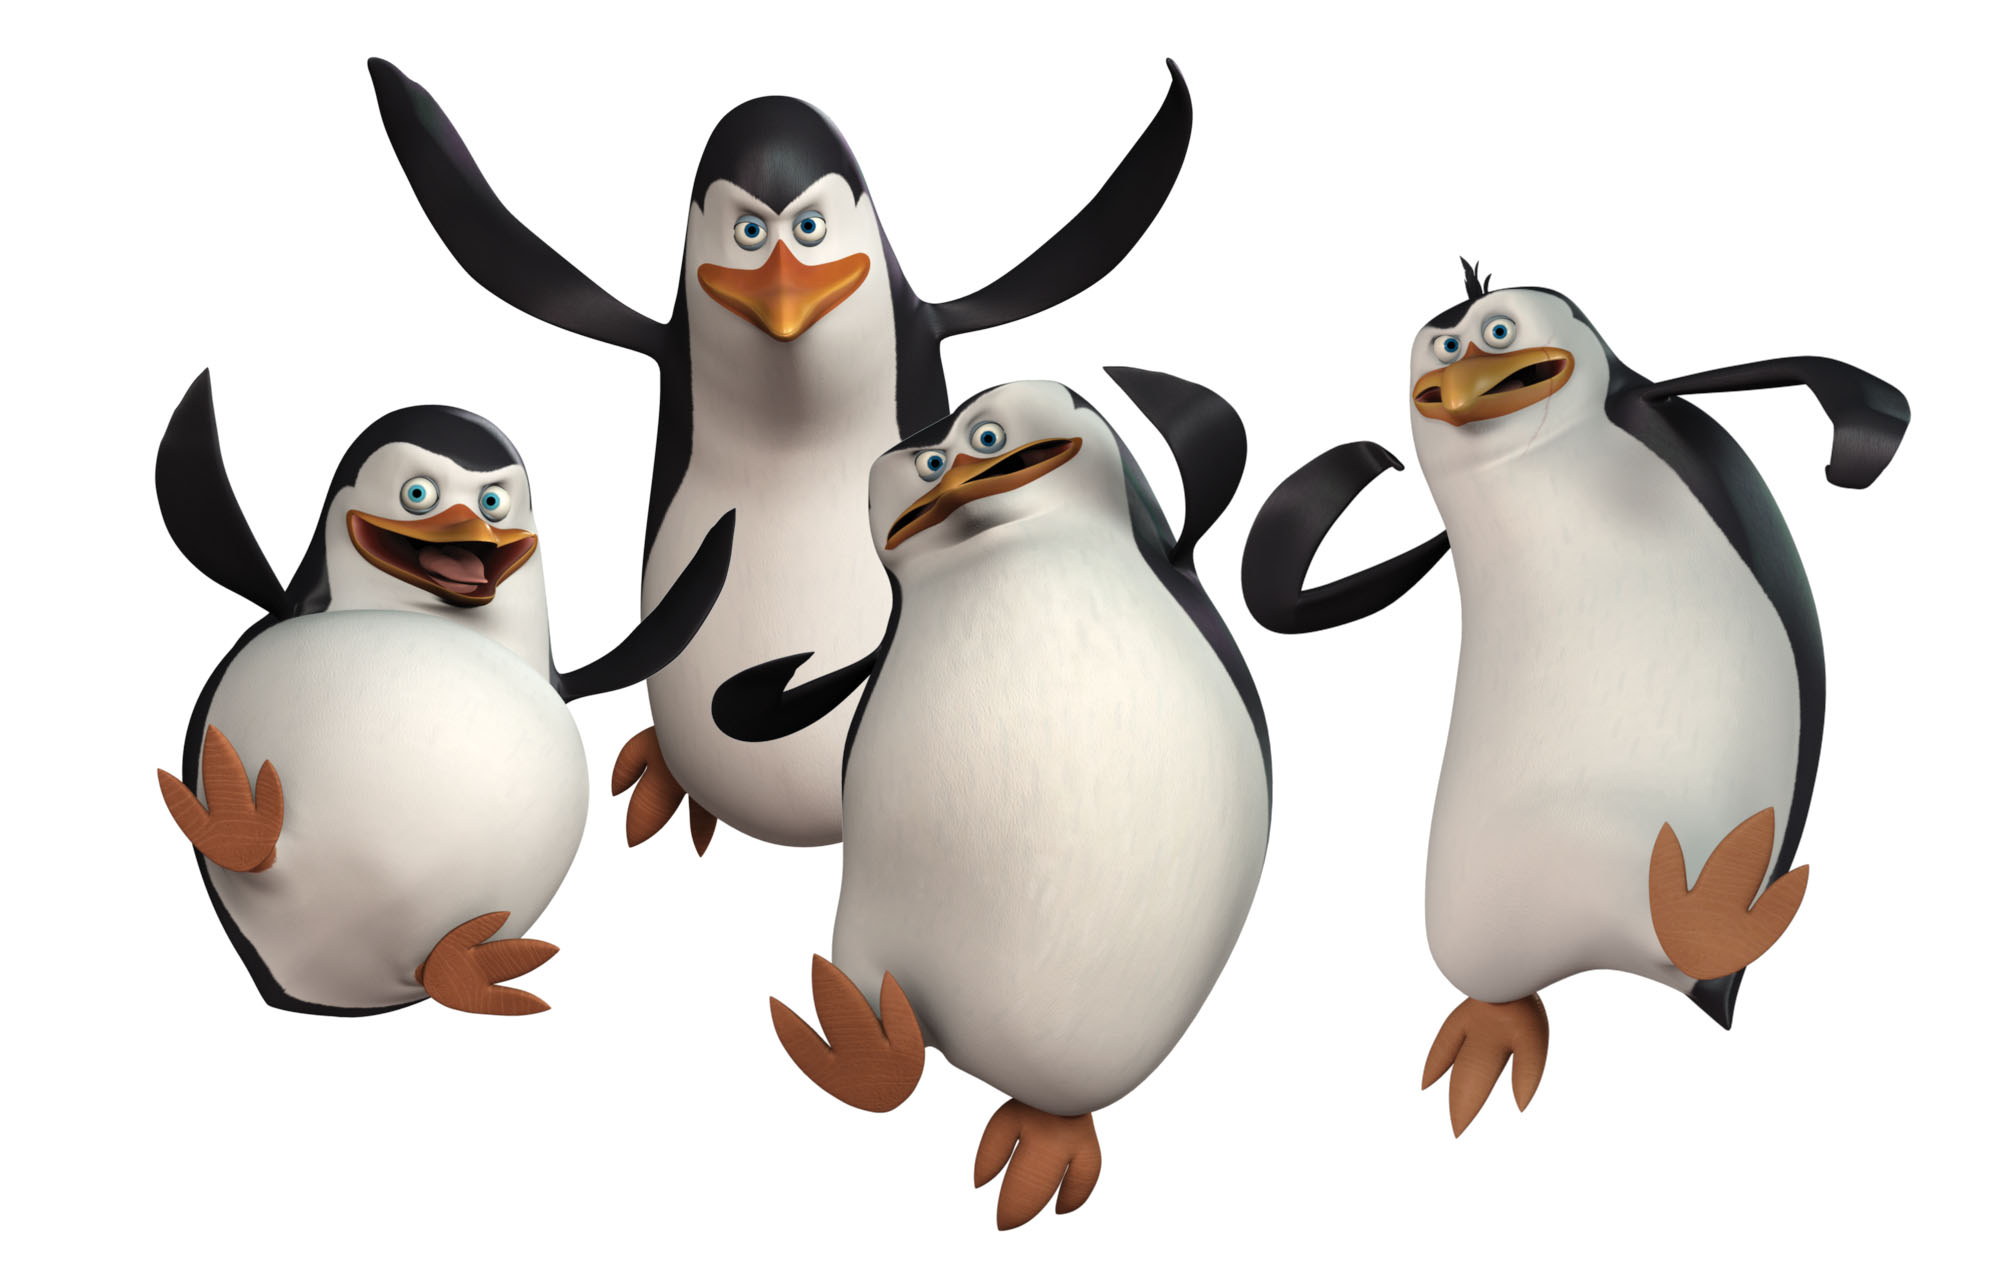 Penguins of madagascar clipart.